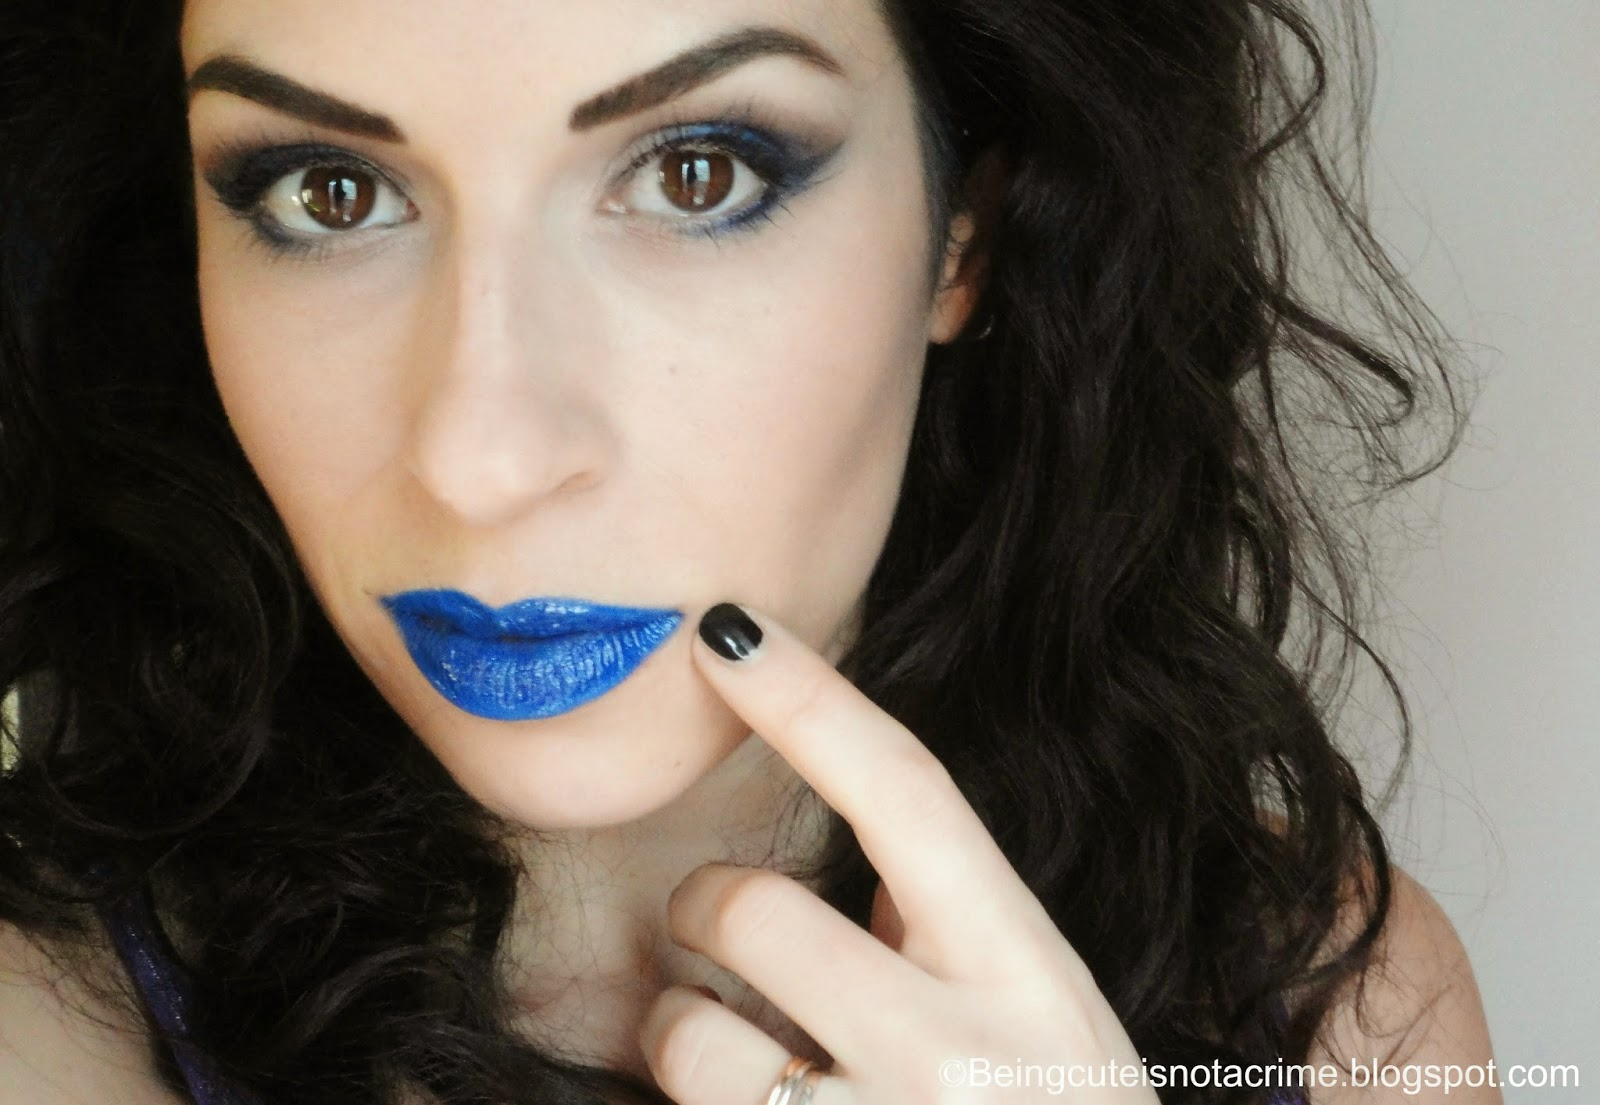 http://beingcuteisnotacrime.blogspot.nl/2014/03/blue-fixation-make-up-look.html